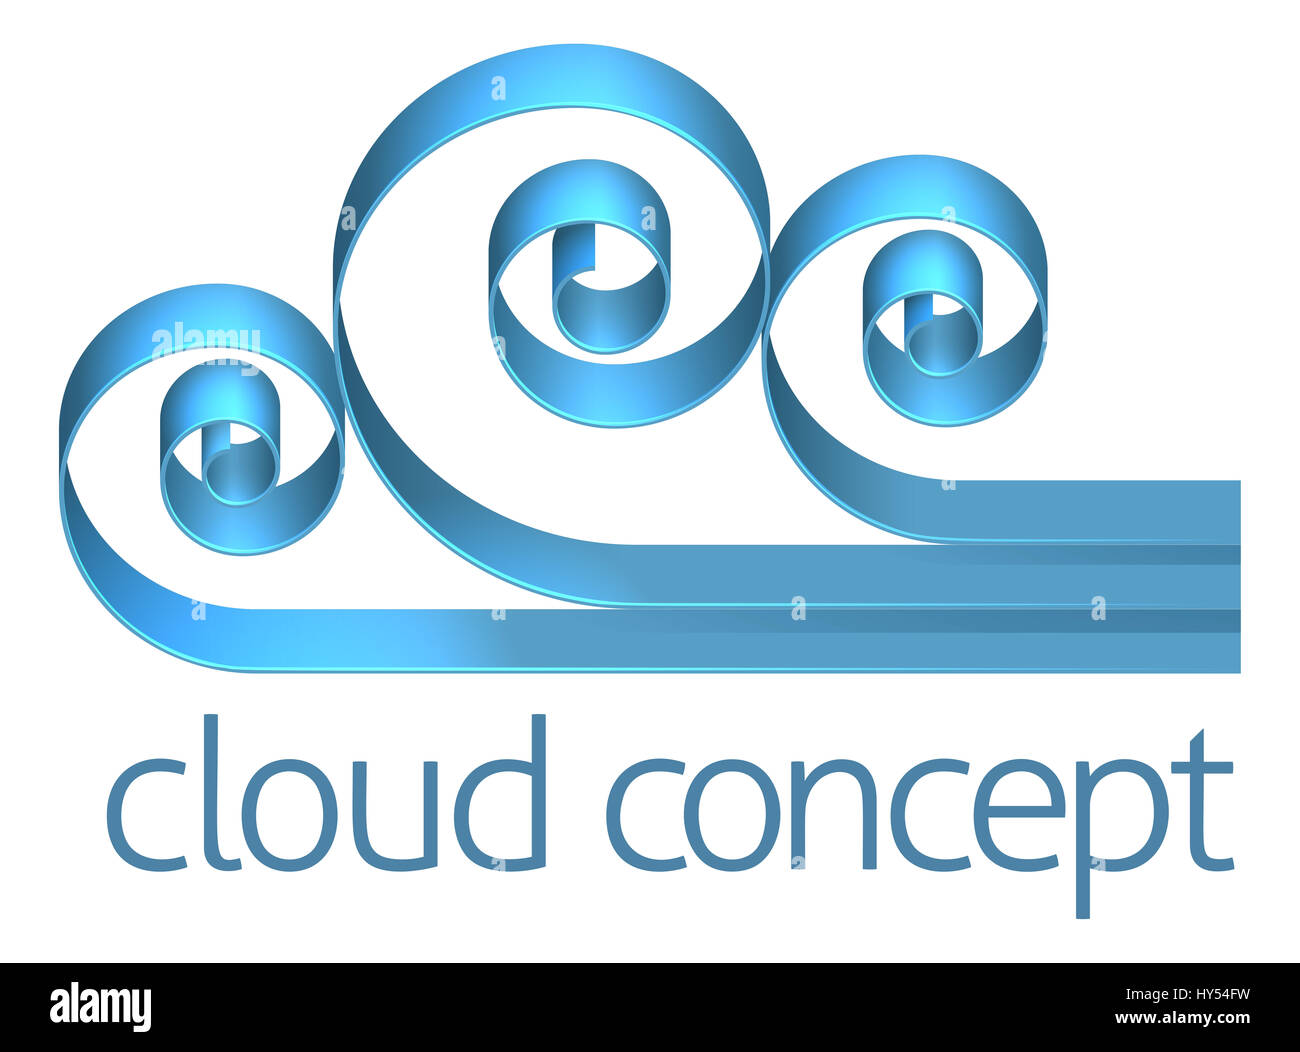 A cloud concept icon design element - Stock Image